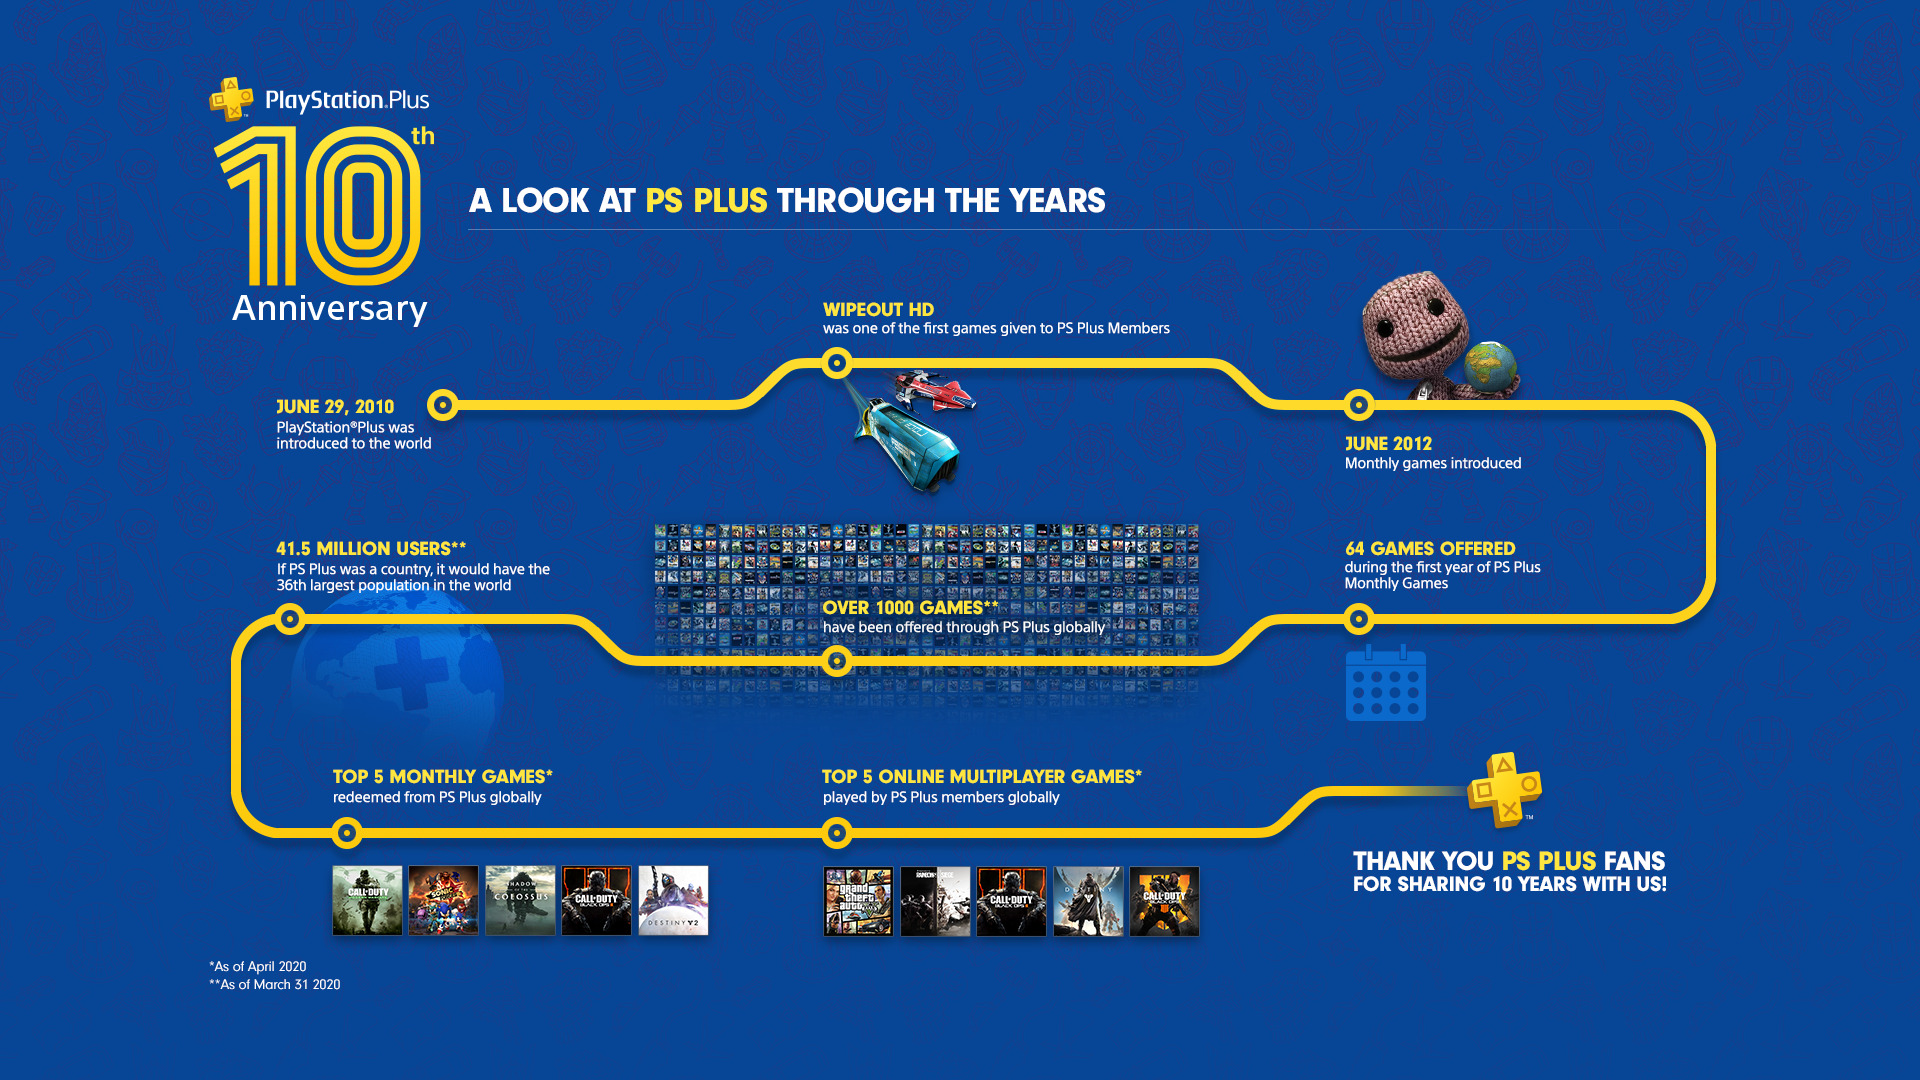 PS PLUS 10 YEAR